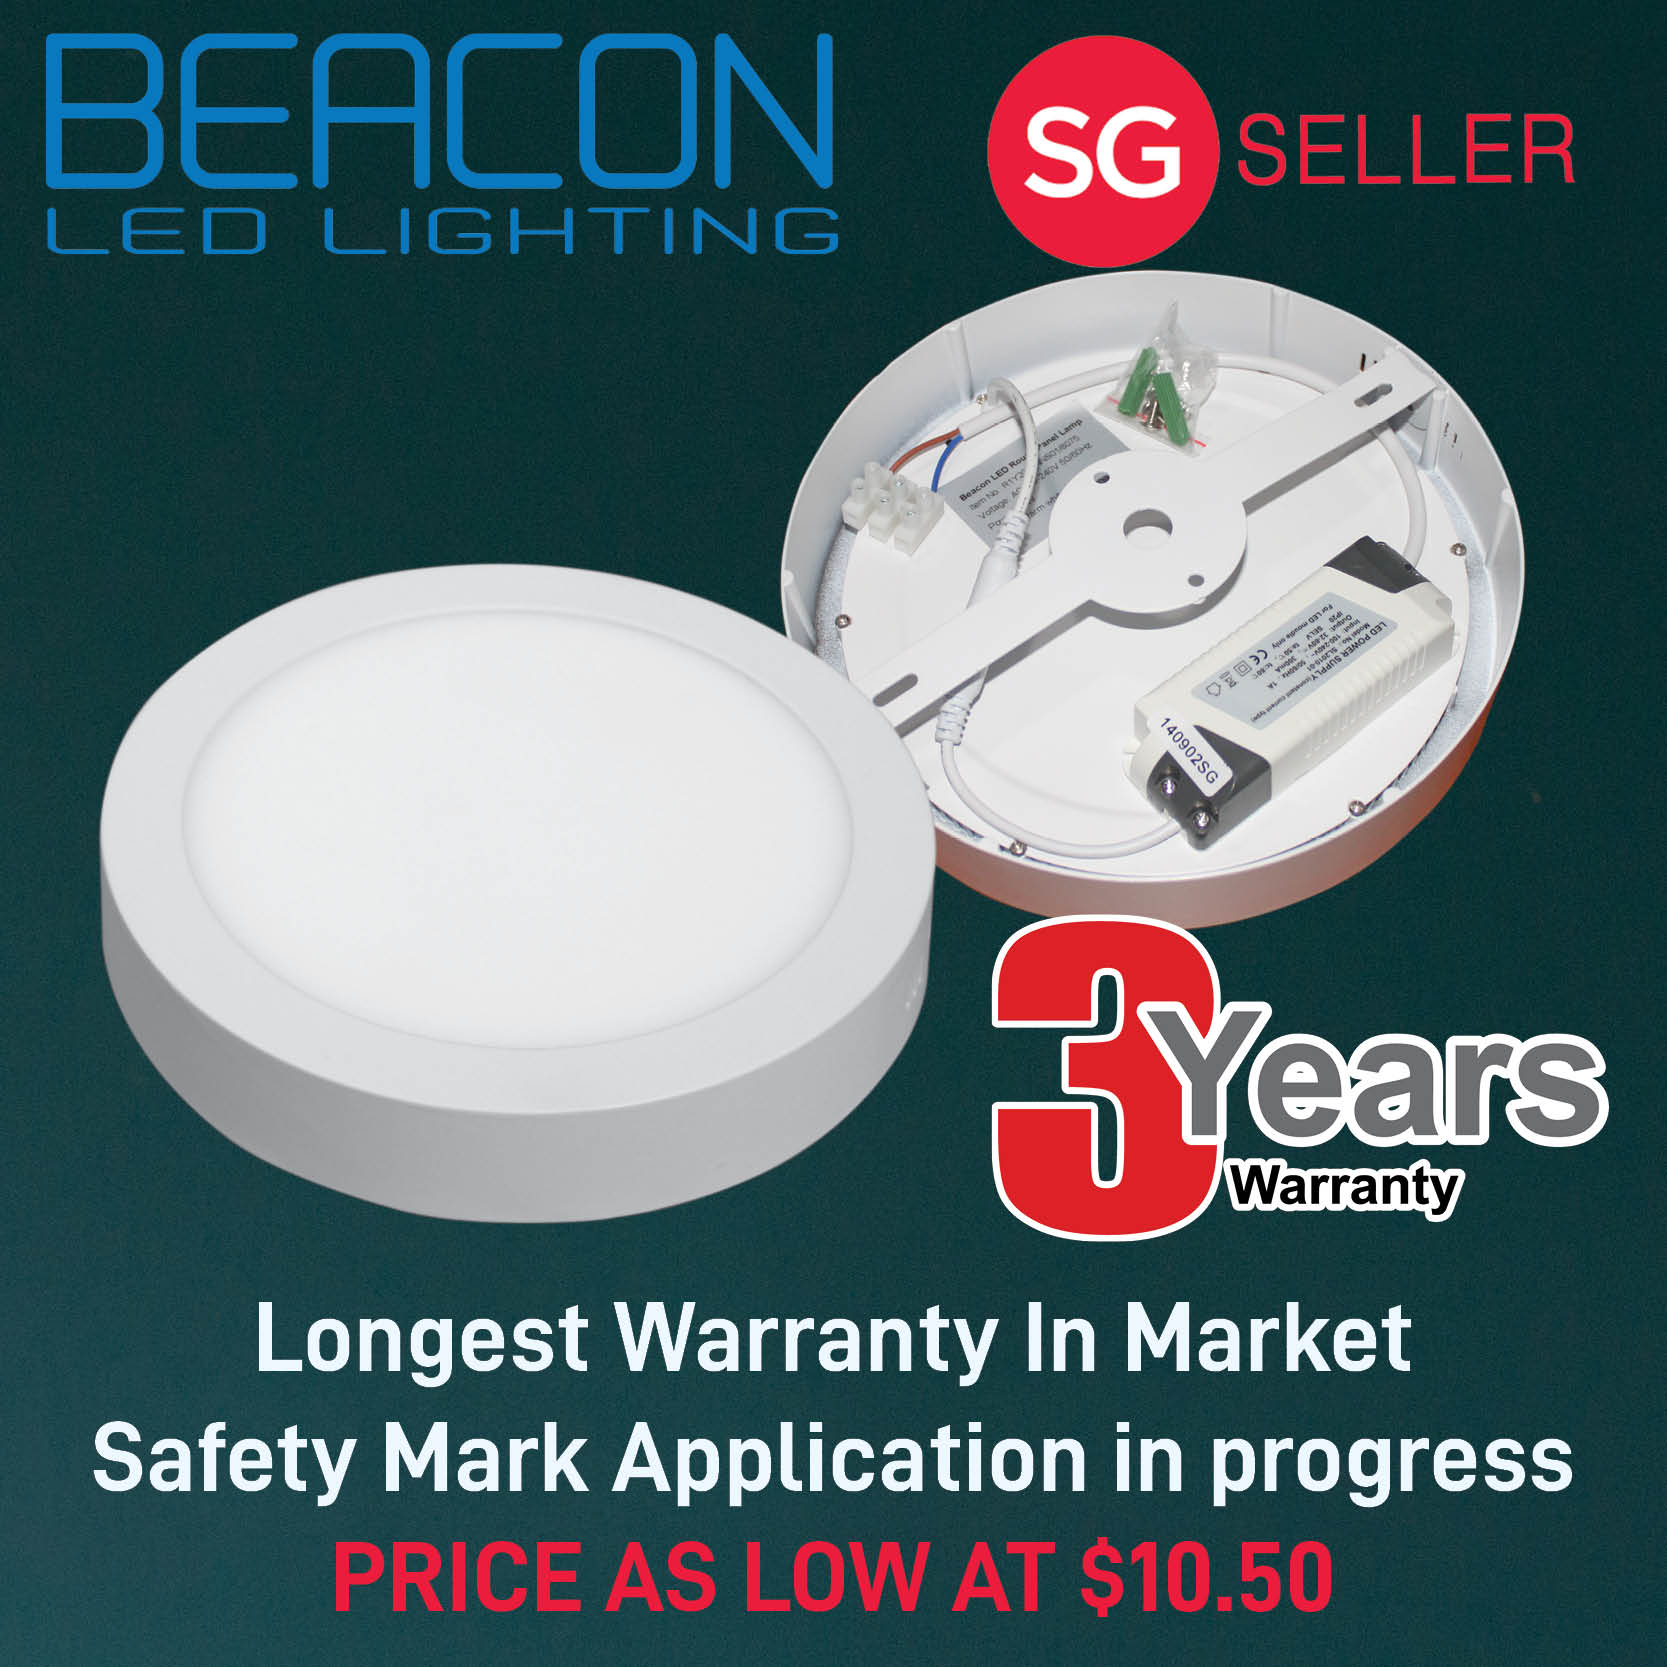 BEACON LED 12W/18W/30W/36W/45W Ceiling Light / Square Round Rectangle Surface Mounted Light-3 year warranty LONGEST WARRANTY